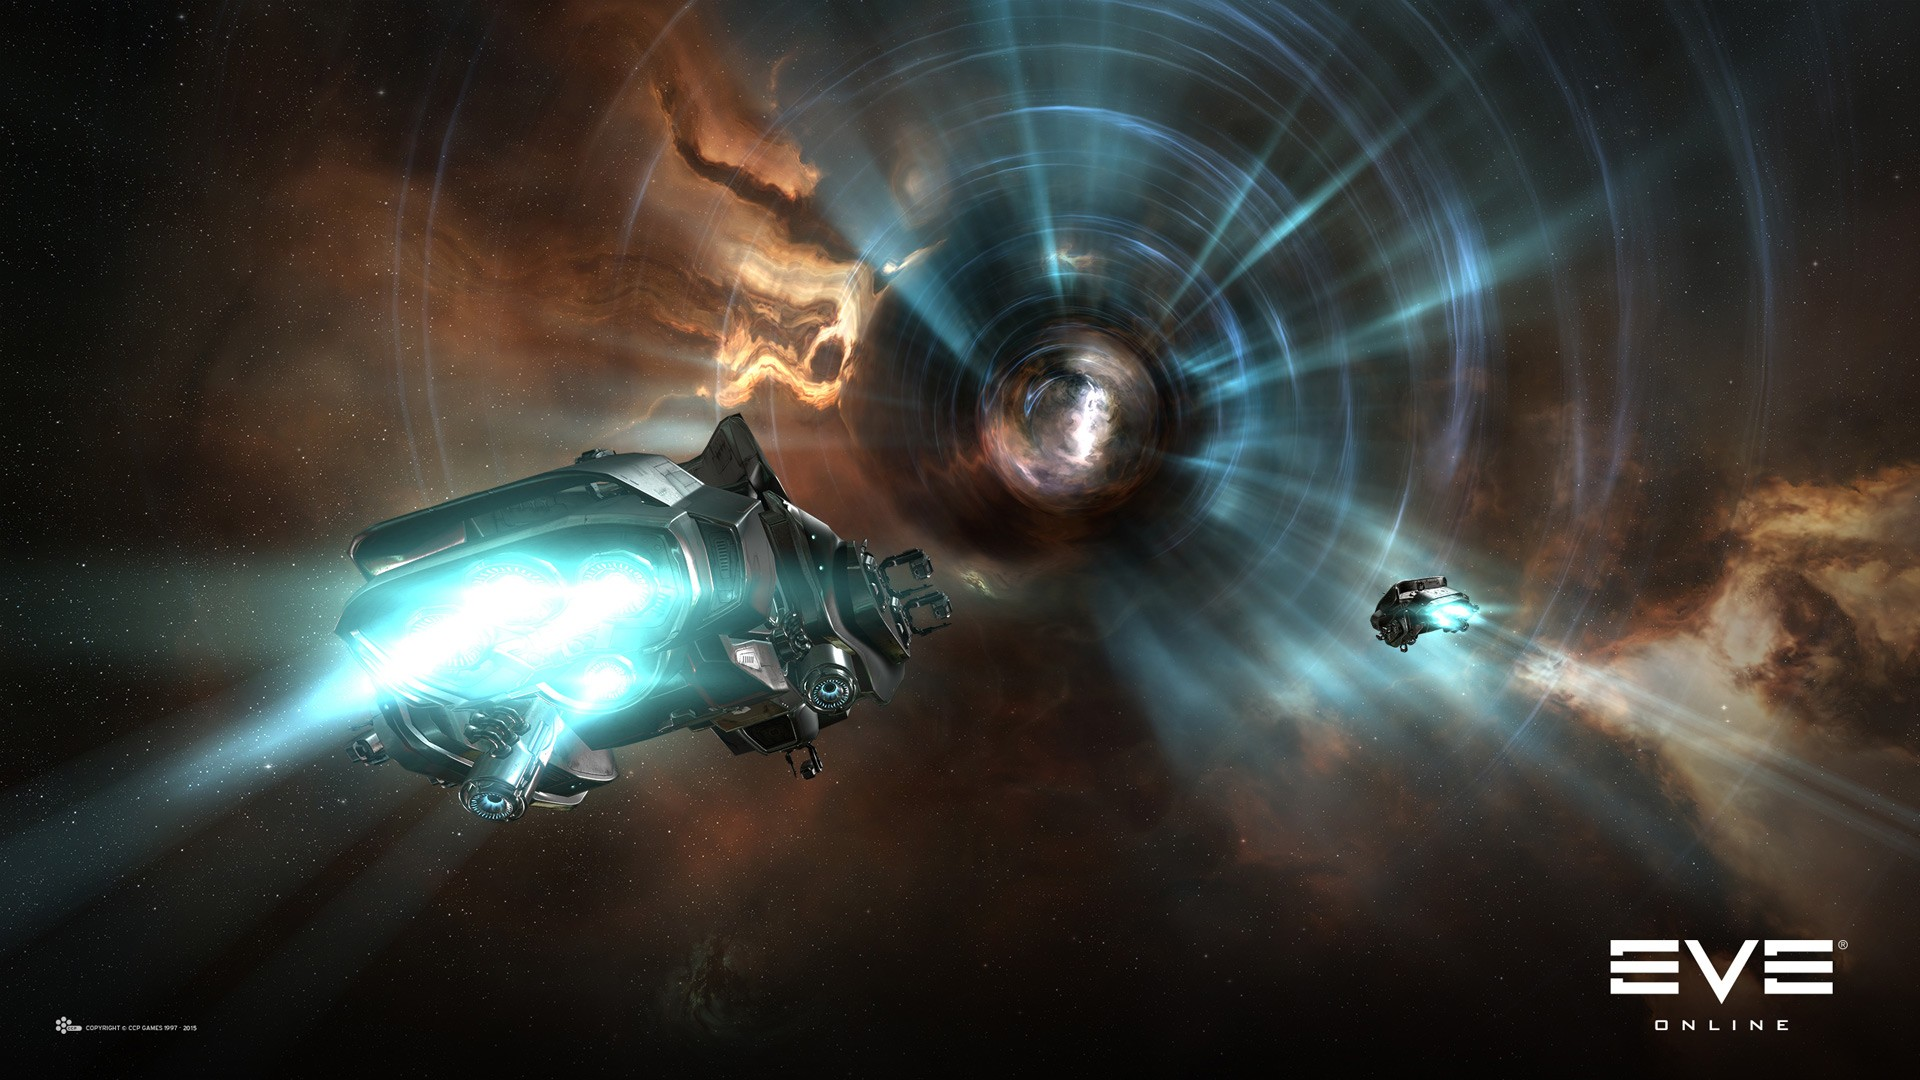 EVE Online Backgrounds, Pictures, Images